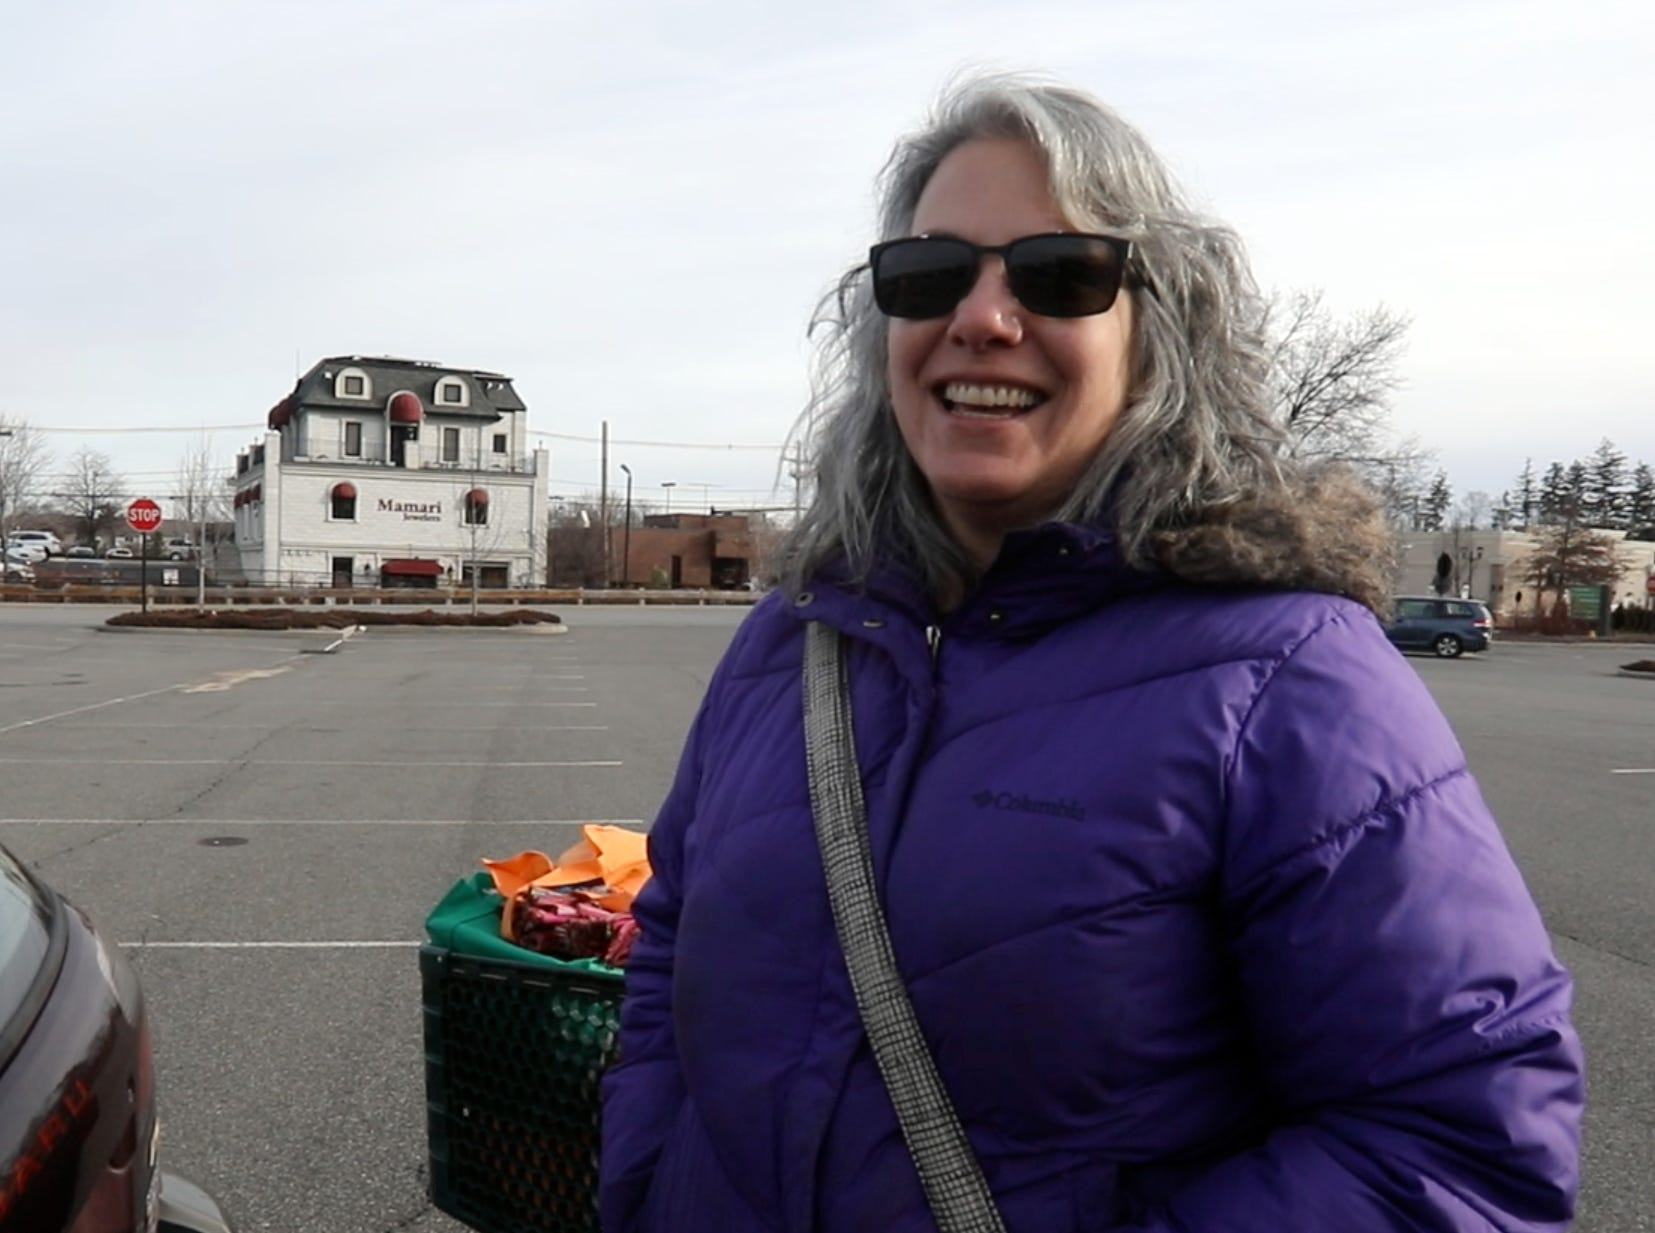 Linda Rurak of Nanuet stocks up on veggies, chips and beer for the upcoming snowstorm at Fairway in Nanuet Jan. 17, 2019.